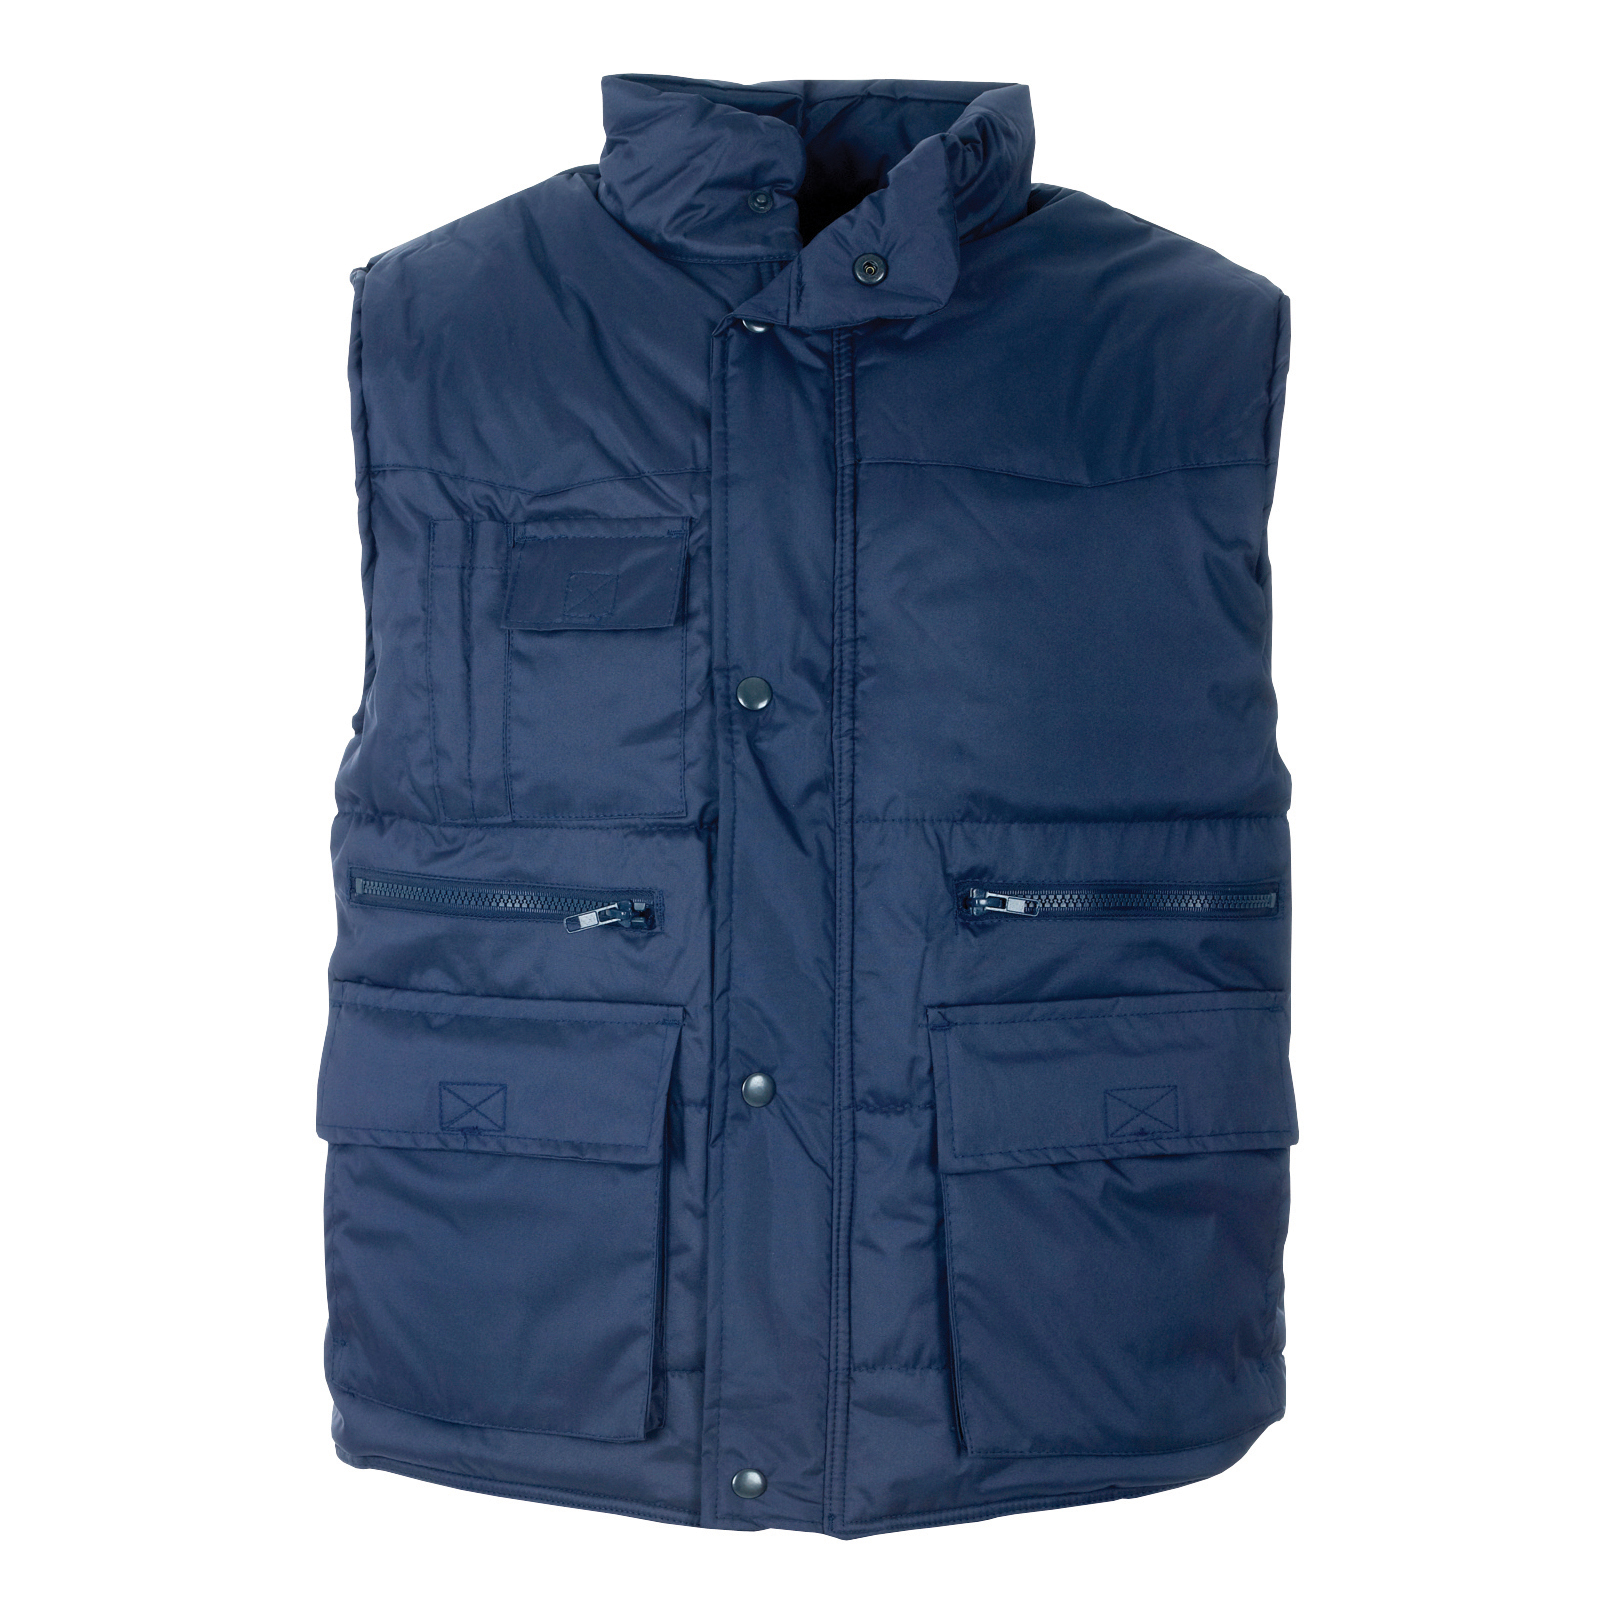 Bodywarmers Body Warmer Polyester with Padding & Multi Pockets 2XL Navy Ref HBNXXL *Approx 3 Day Leadtime*